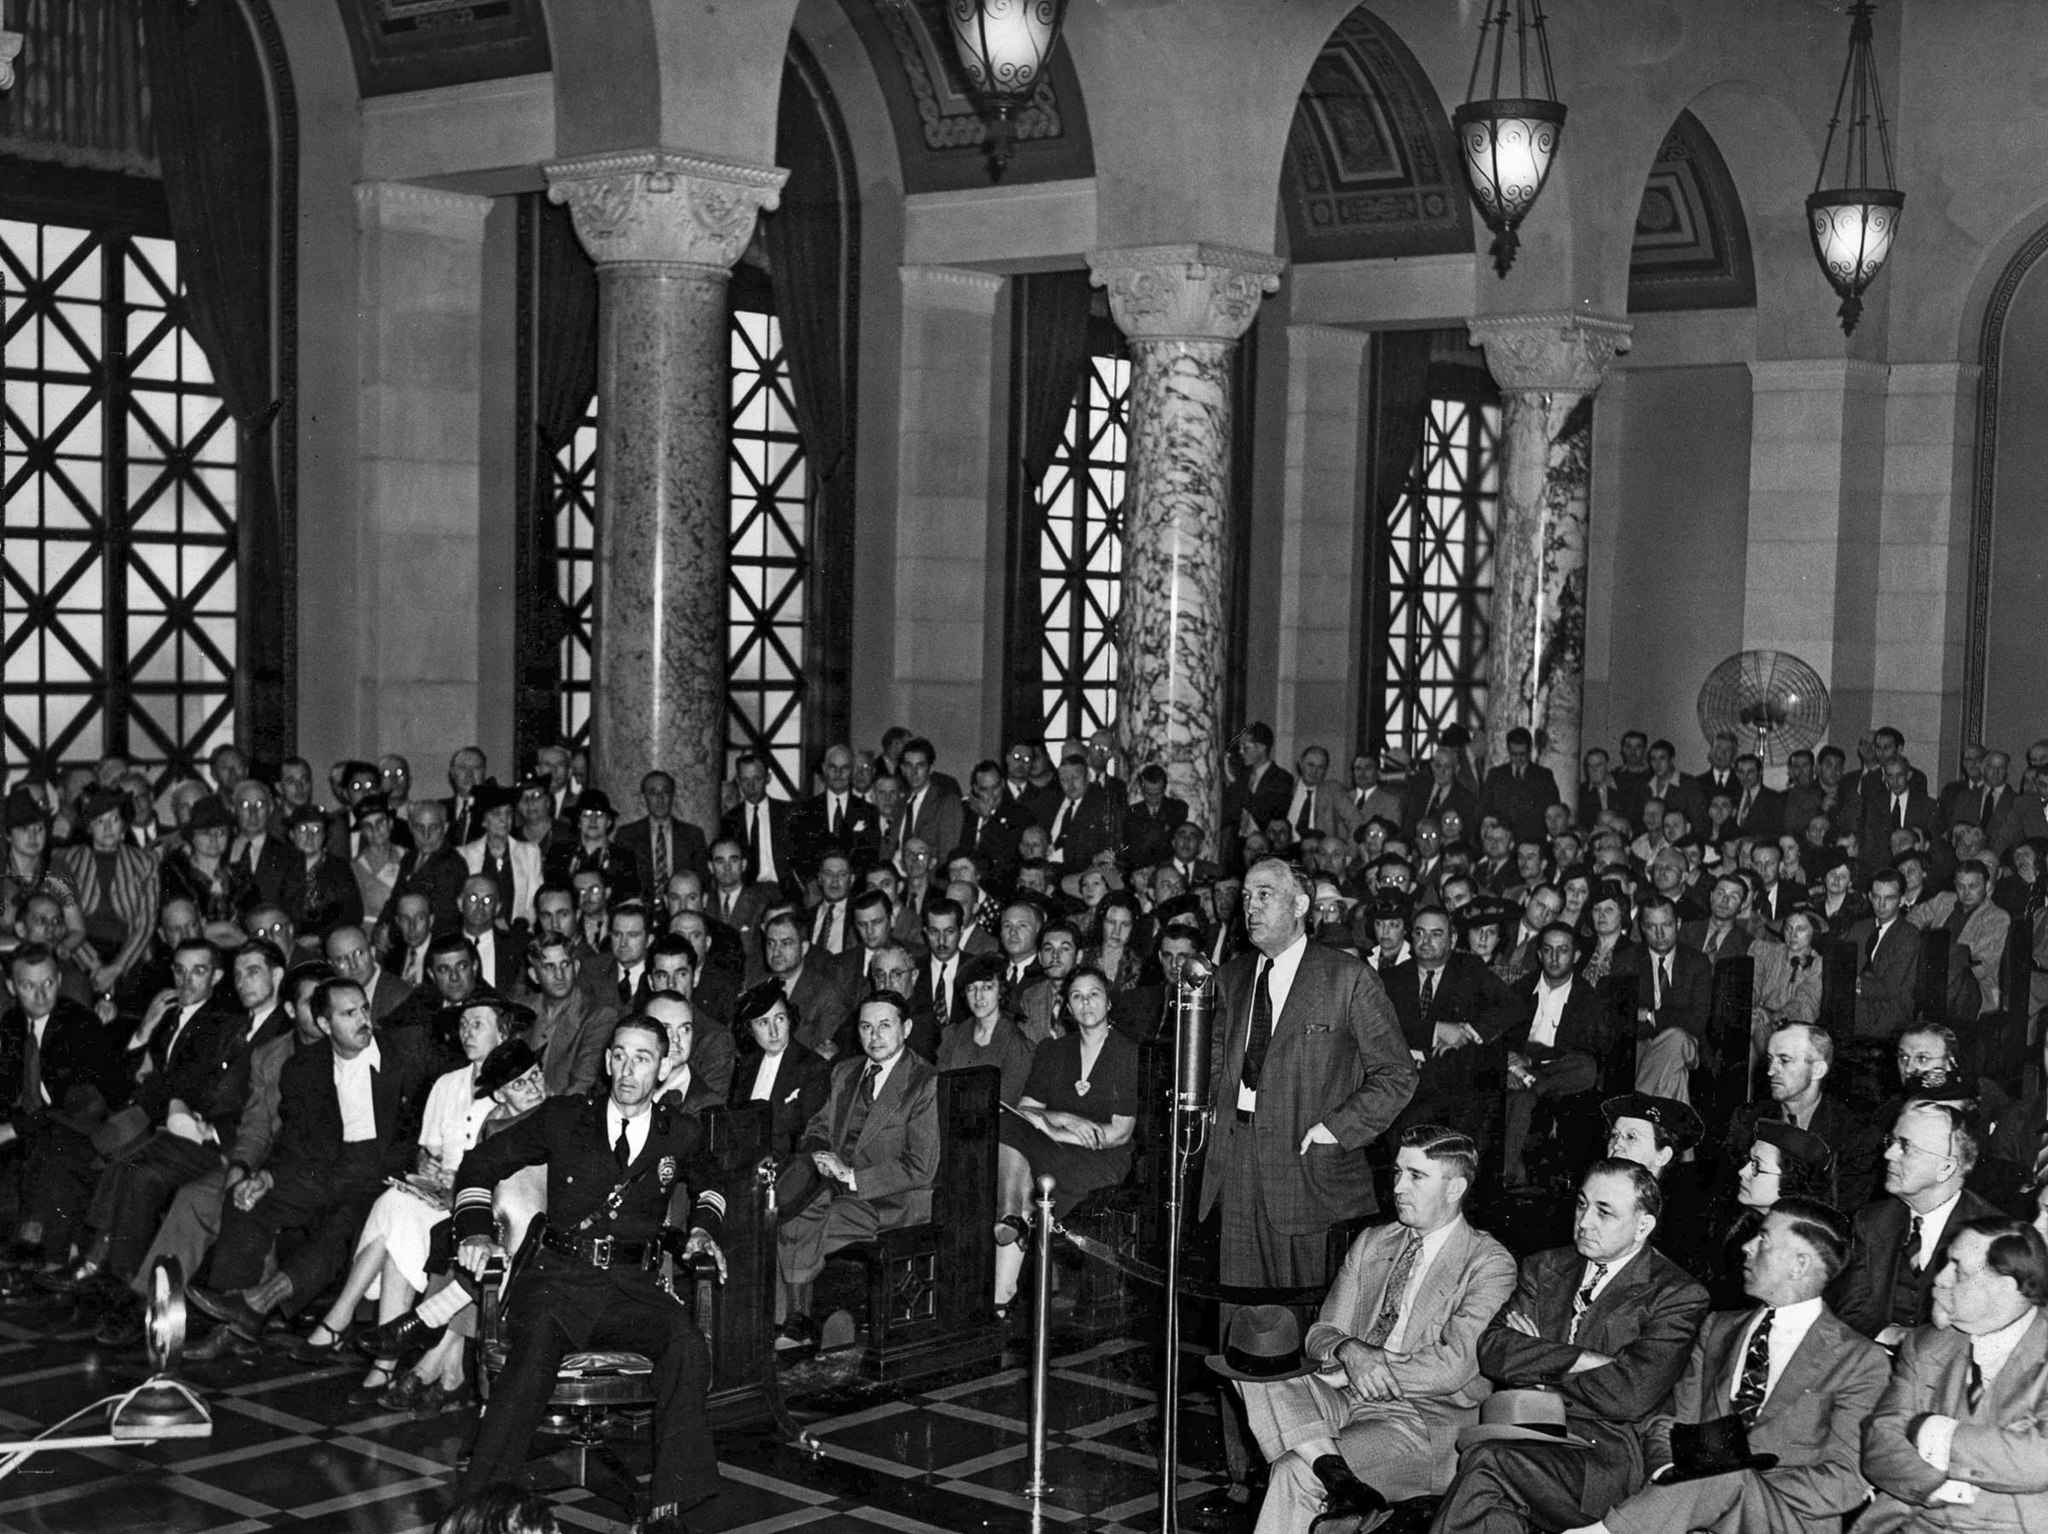 Oct. 23, 1939: A crowd of 400 gathers at Los Angeles City Council meeting to discuss the pros and co